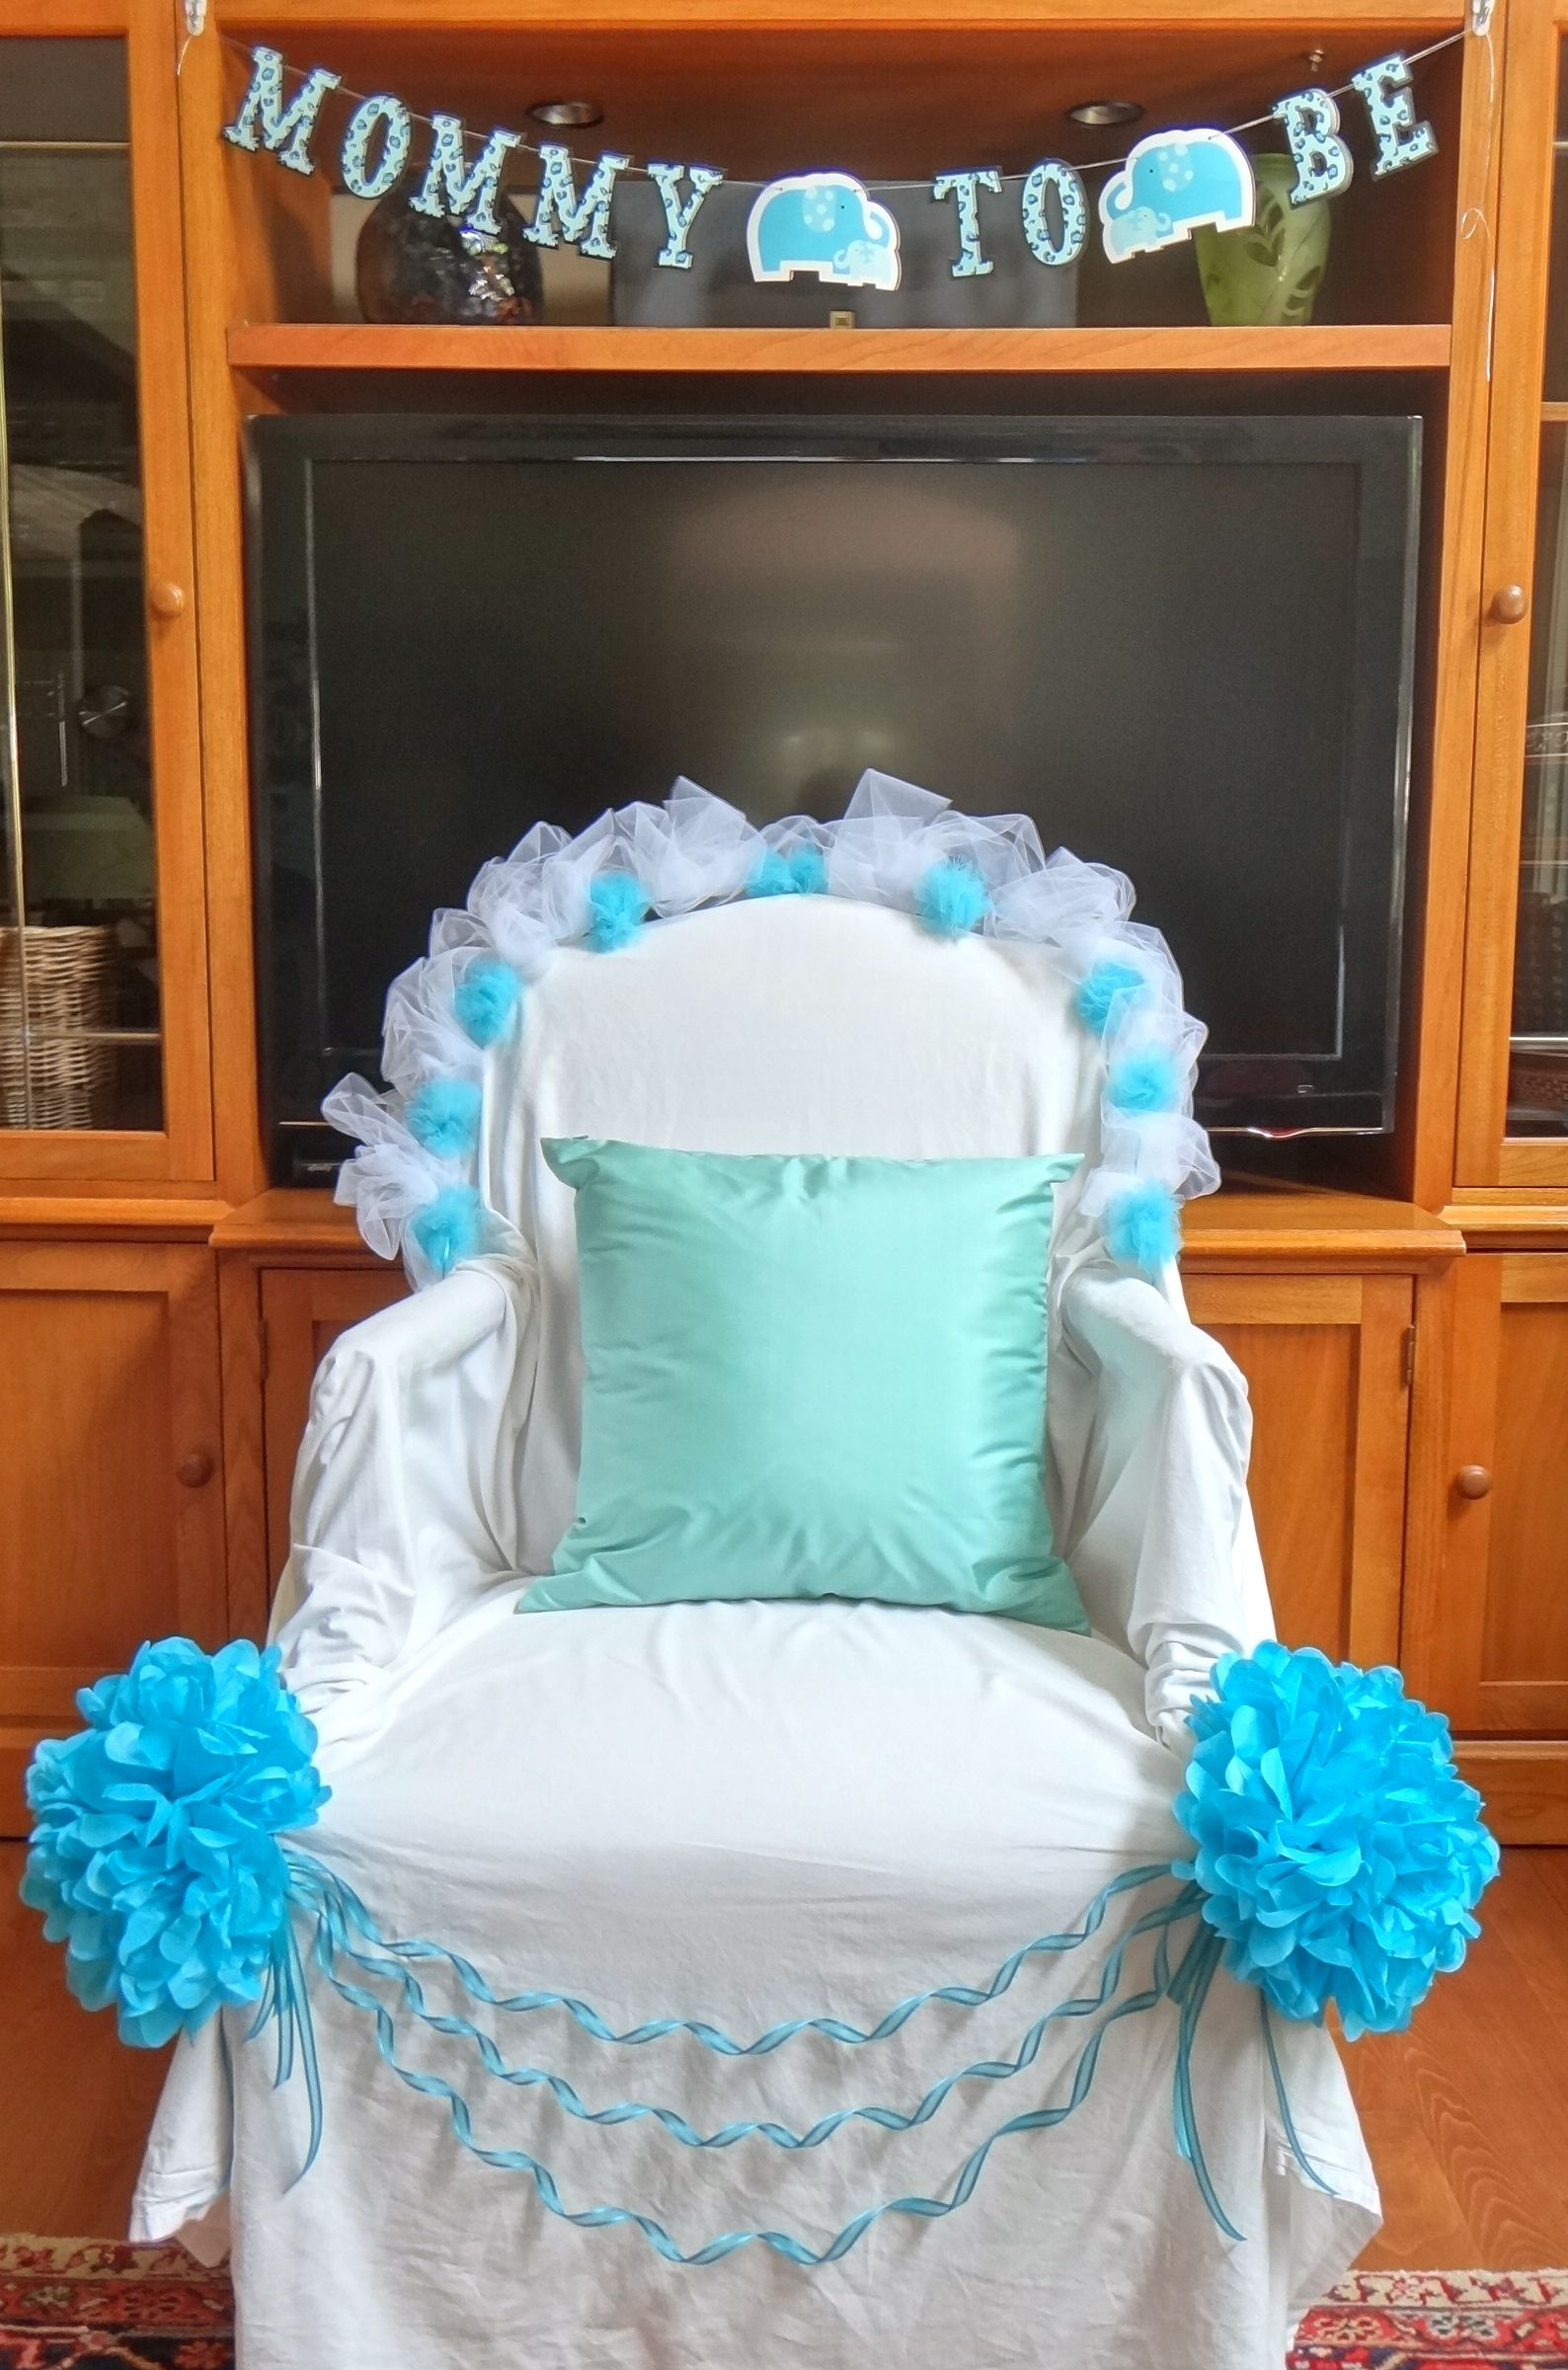 Mom to be thrown Chair draped with a white bed sheet and decor